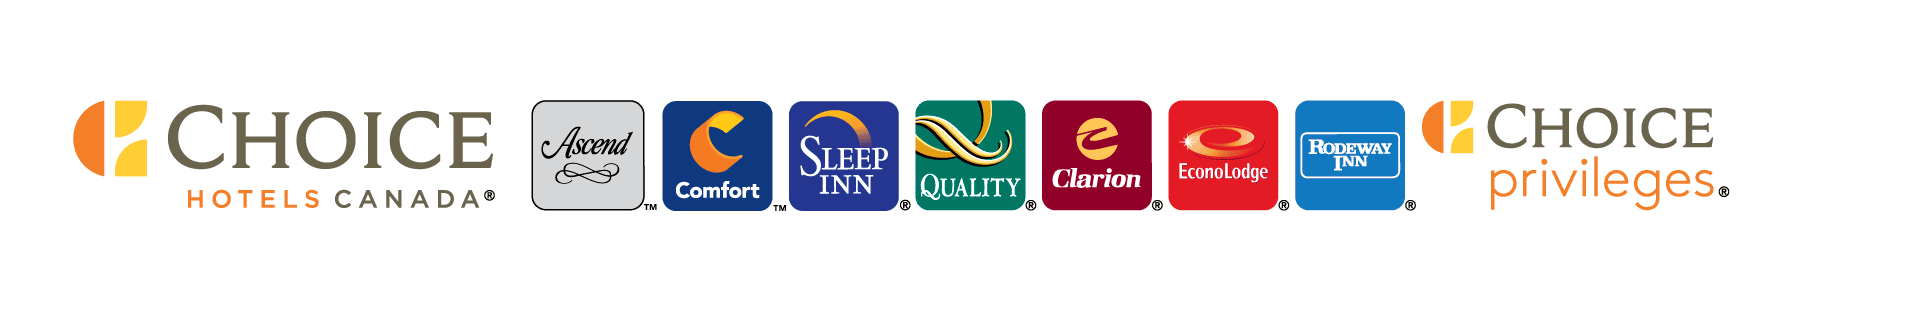 da6c178b For 25 years, Choice Hotels Canada has been one of the highest occupied  franchised accommodation chains in Canada, with over 5 million guests  staying at one ...